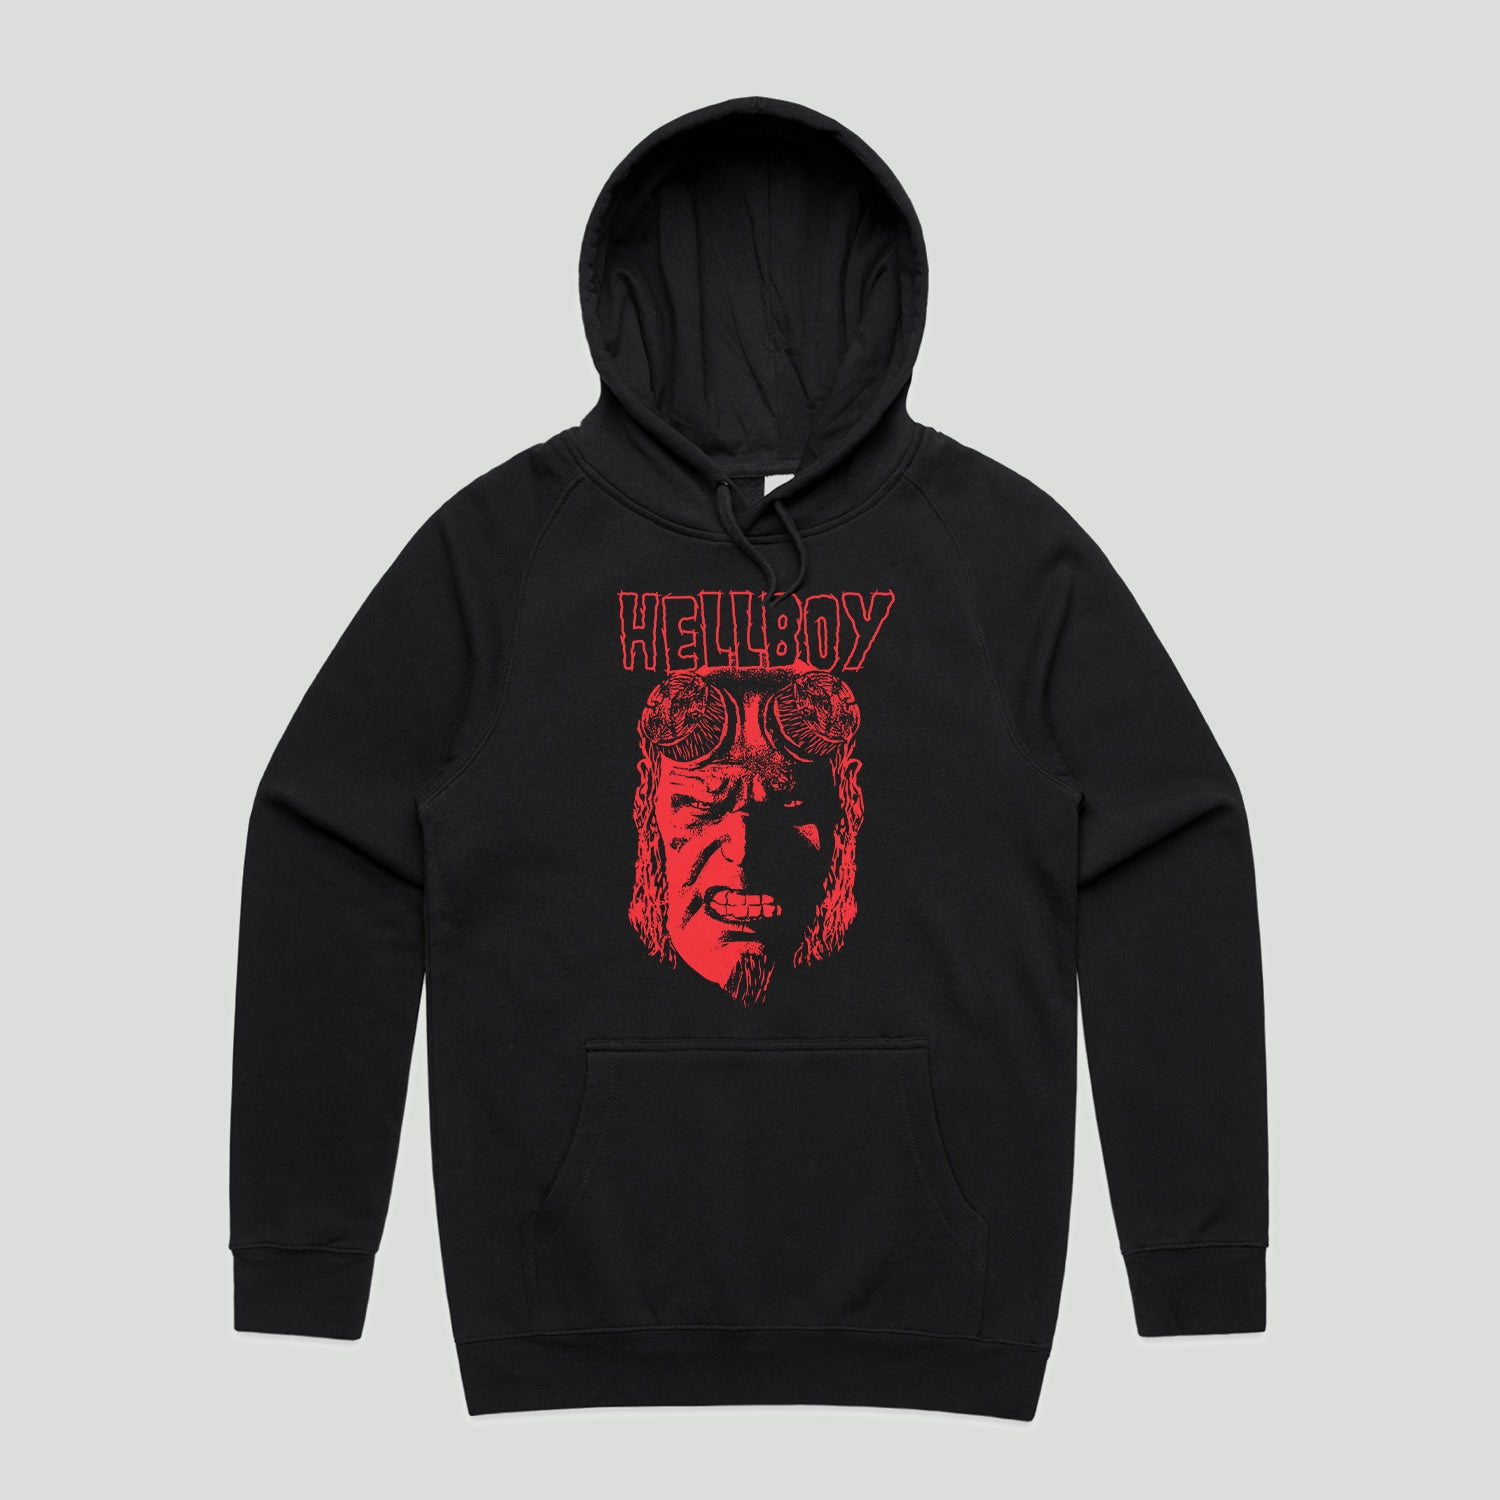 Hellboy Hoodies